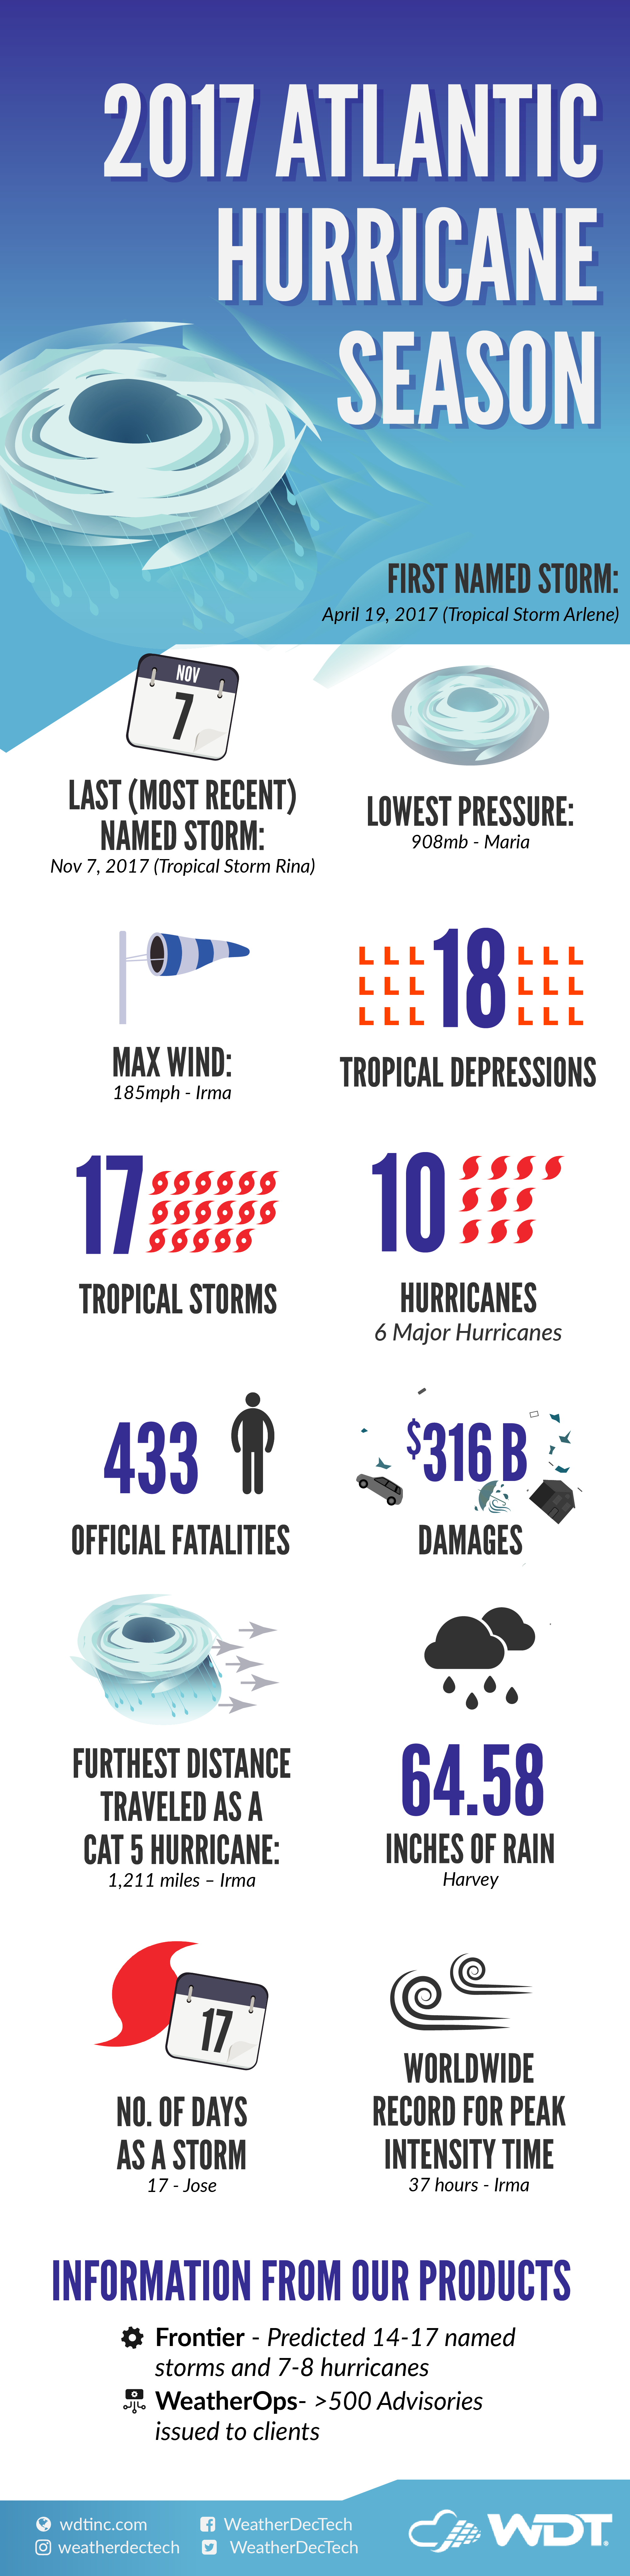 https://cdn2.hubspot.net/hubfs/604407/blog-files/2017-hurricane-season_infographic.png